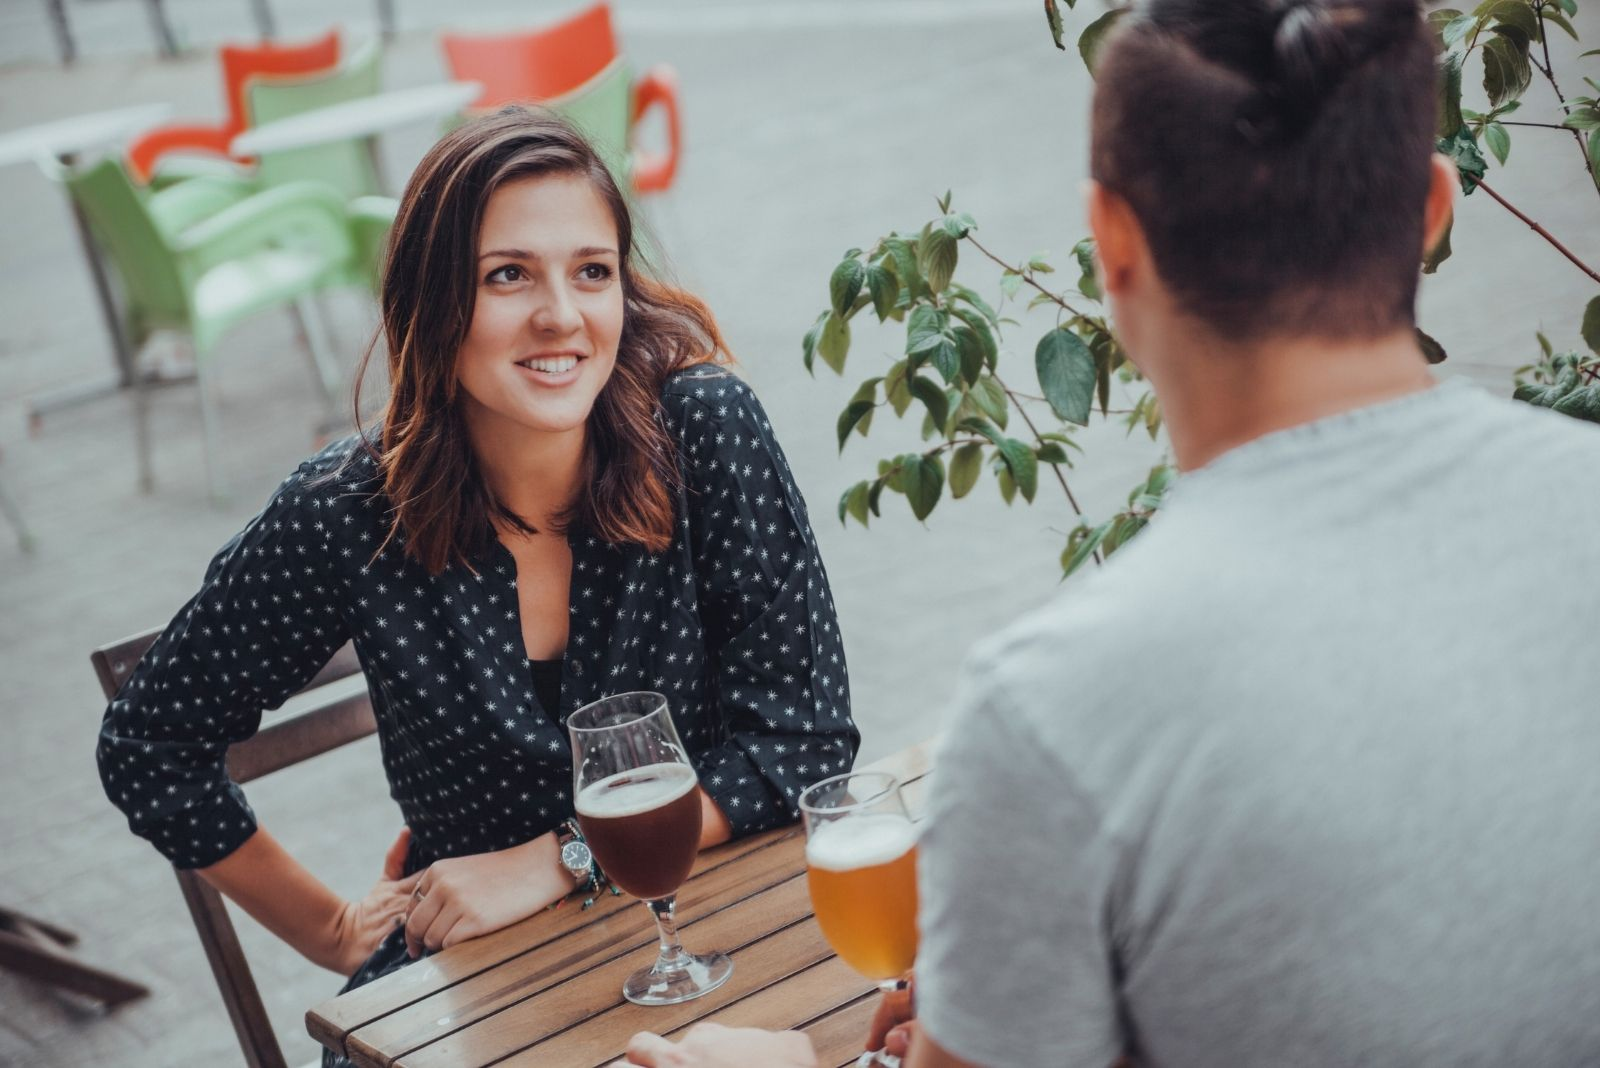 couple drinking outdoors beer and talking seriously